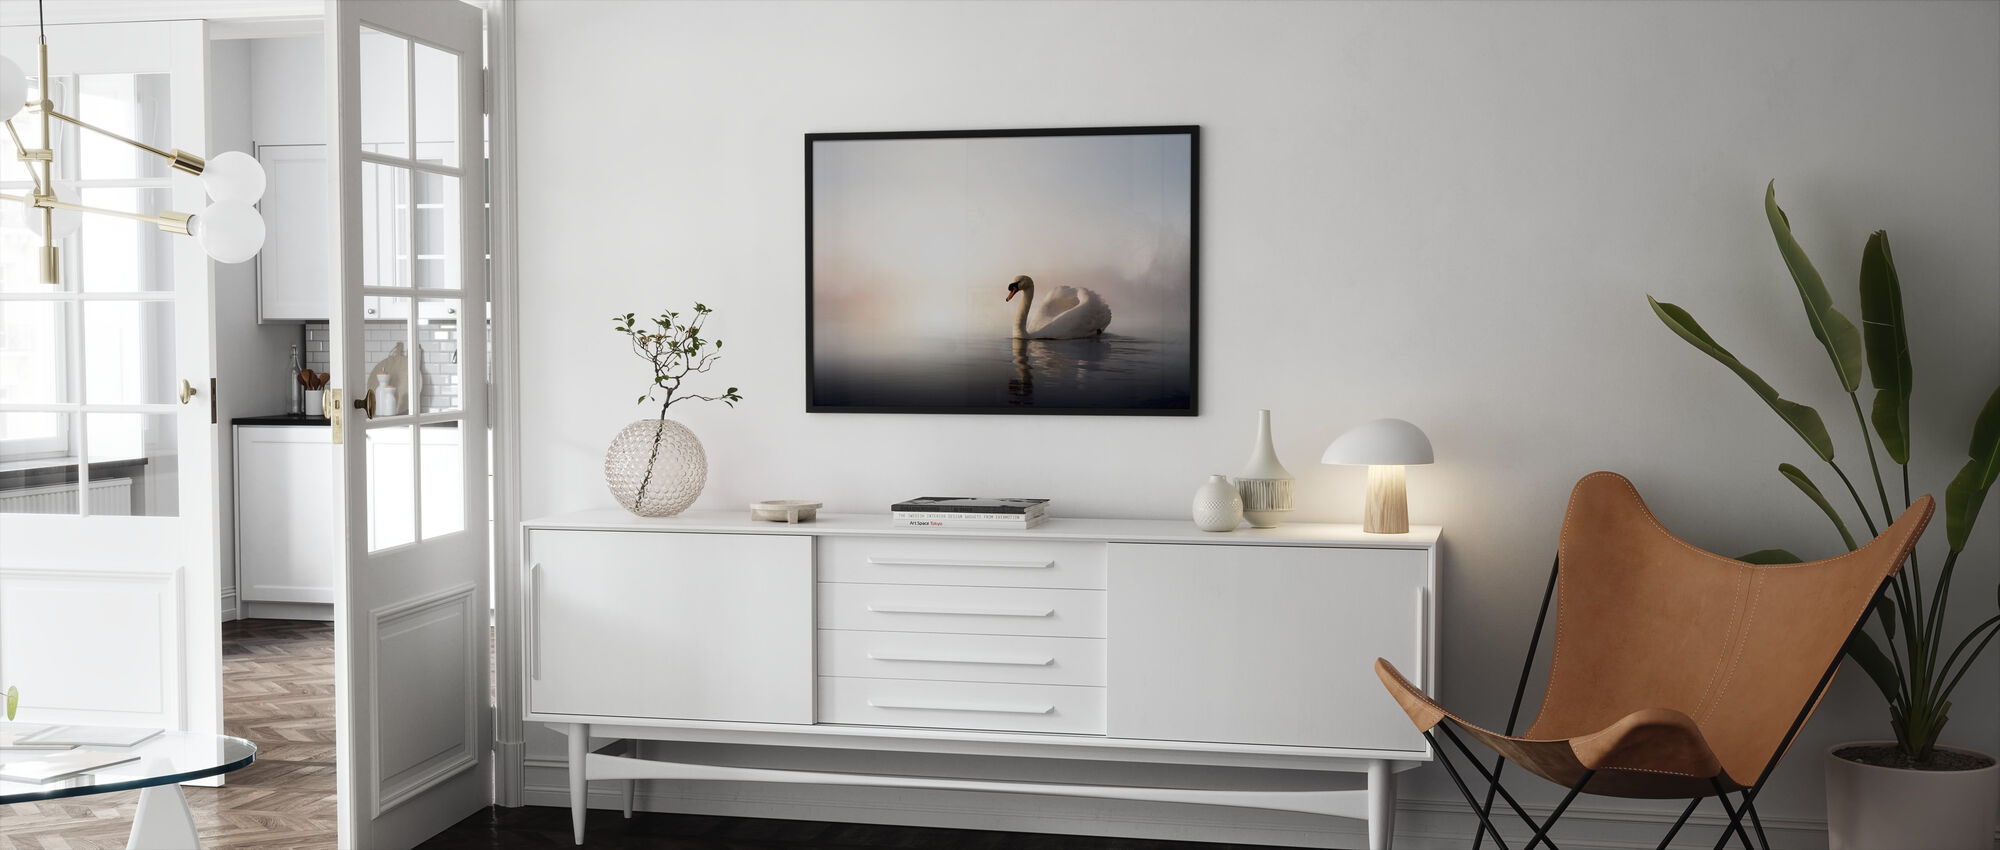 Swan Floating - Framed print - Living Room